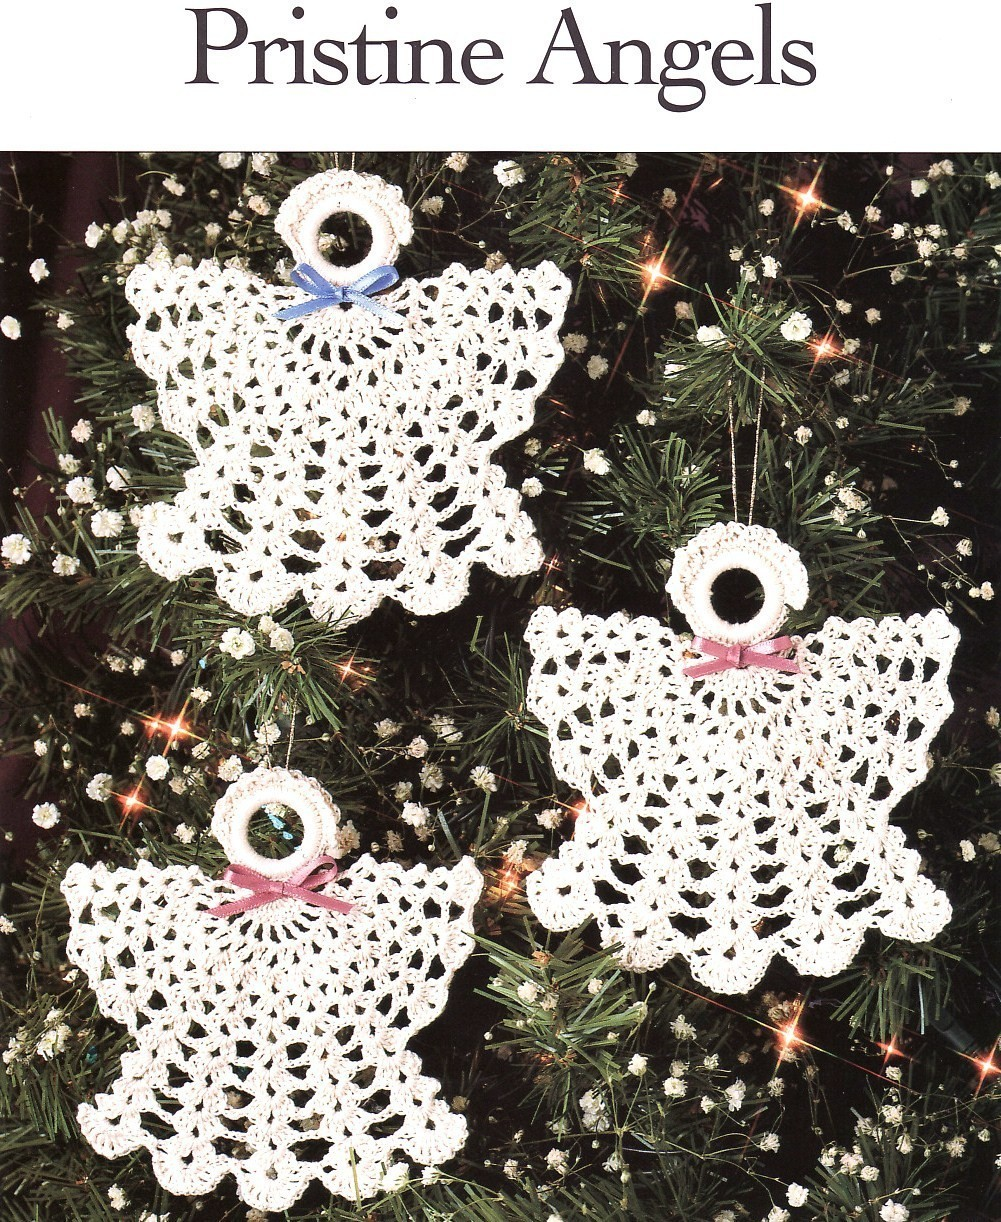 Free Crochet Patterns Christmas Angels : Pristine Angels Crochet Patterns Christmas Ornaments ...